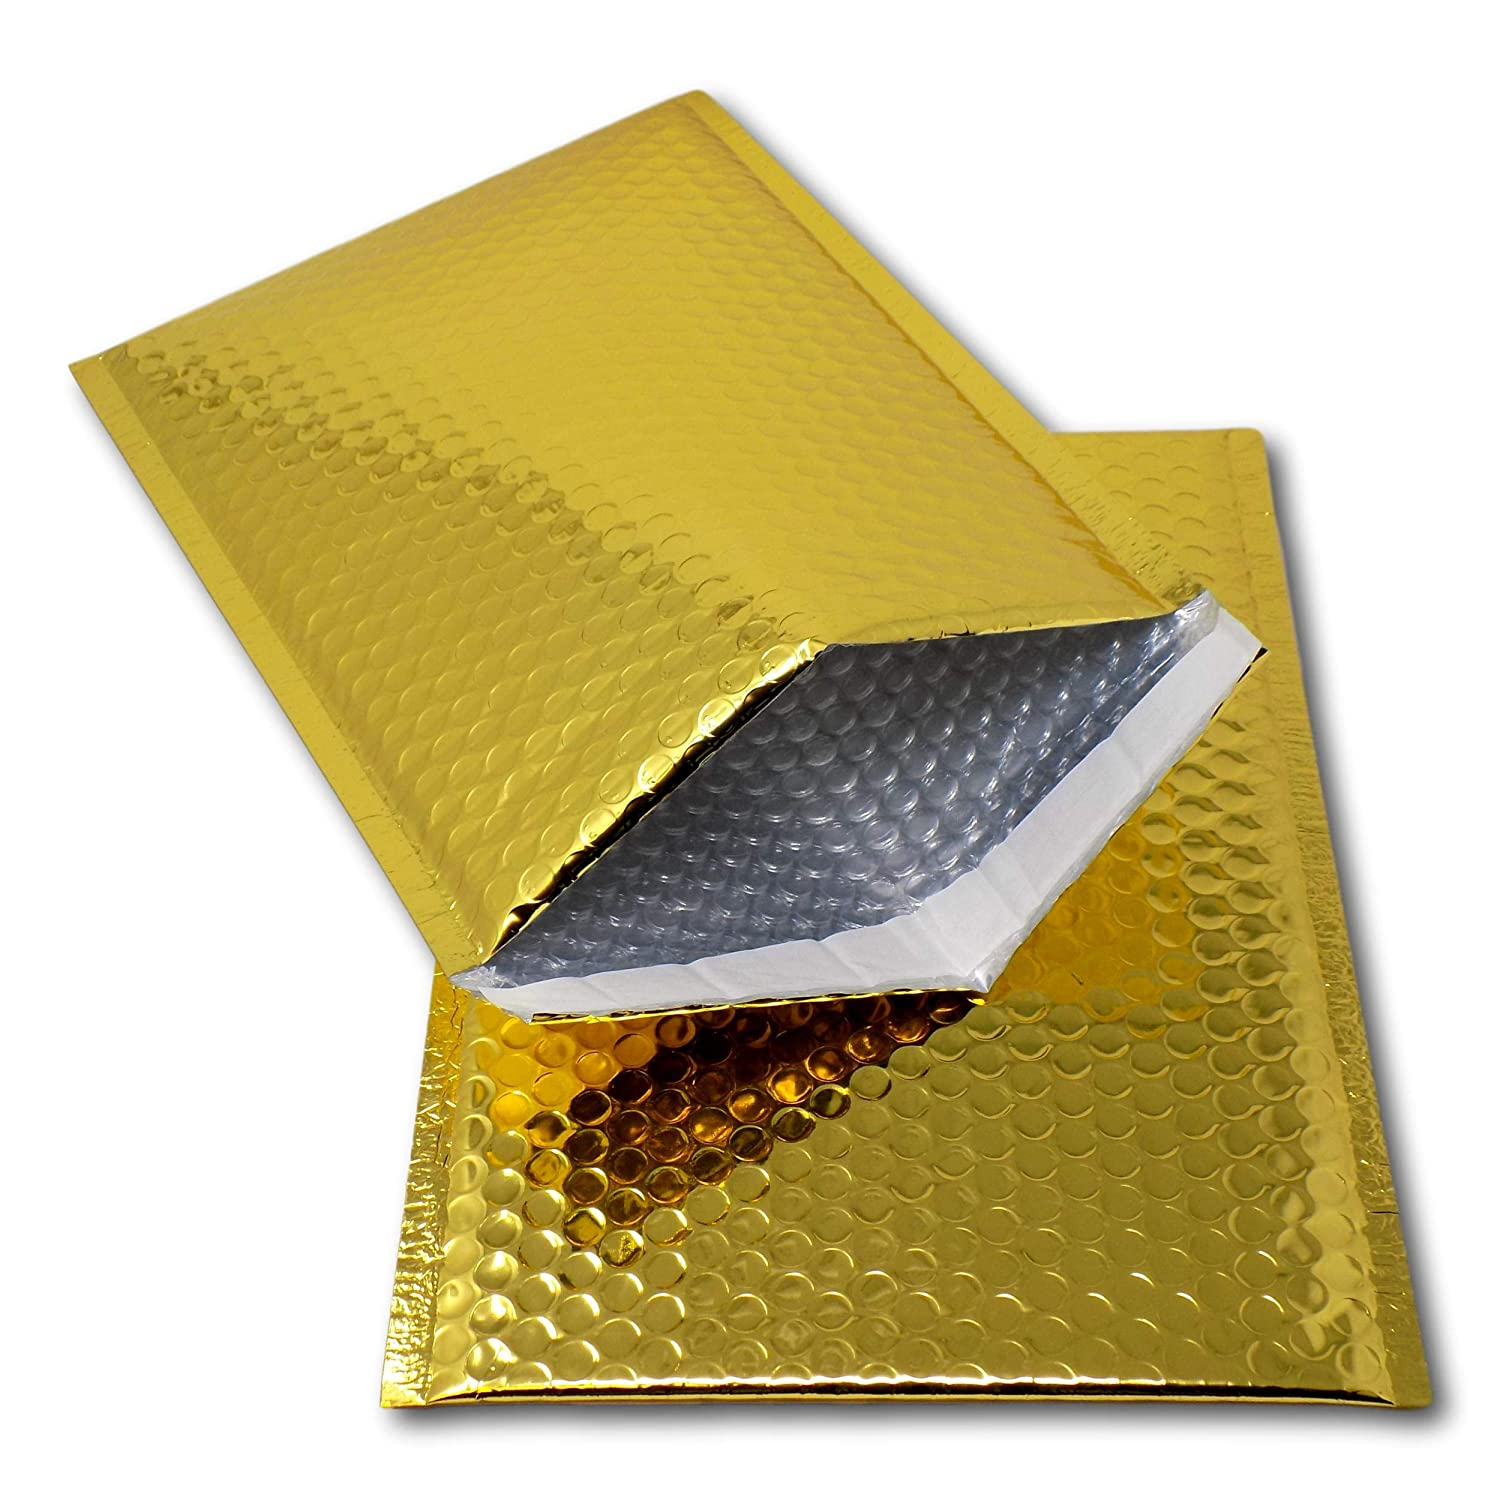 EPOSGEAR 10 Gold Shiny Metallic Foil Bubble Padded Bag Mailing Envelopes - Perfect for marketing, promotions or and alternative to gift wrap (A3 / C3-450mm x 320mm)